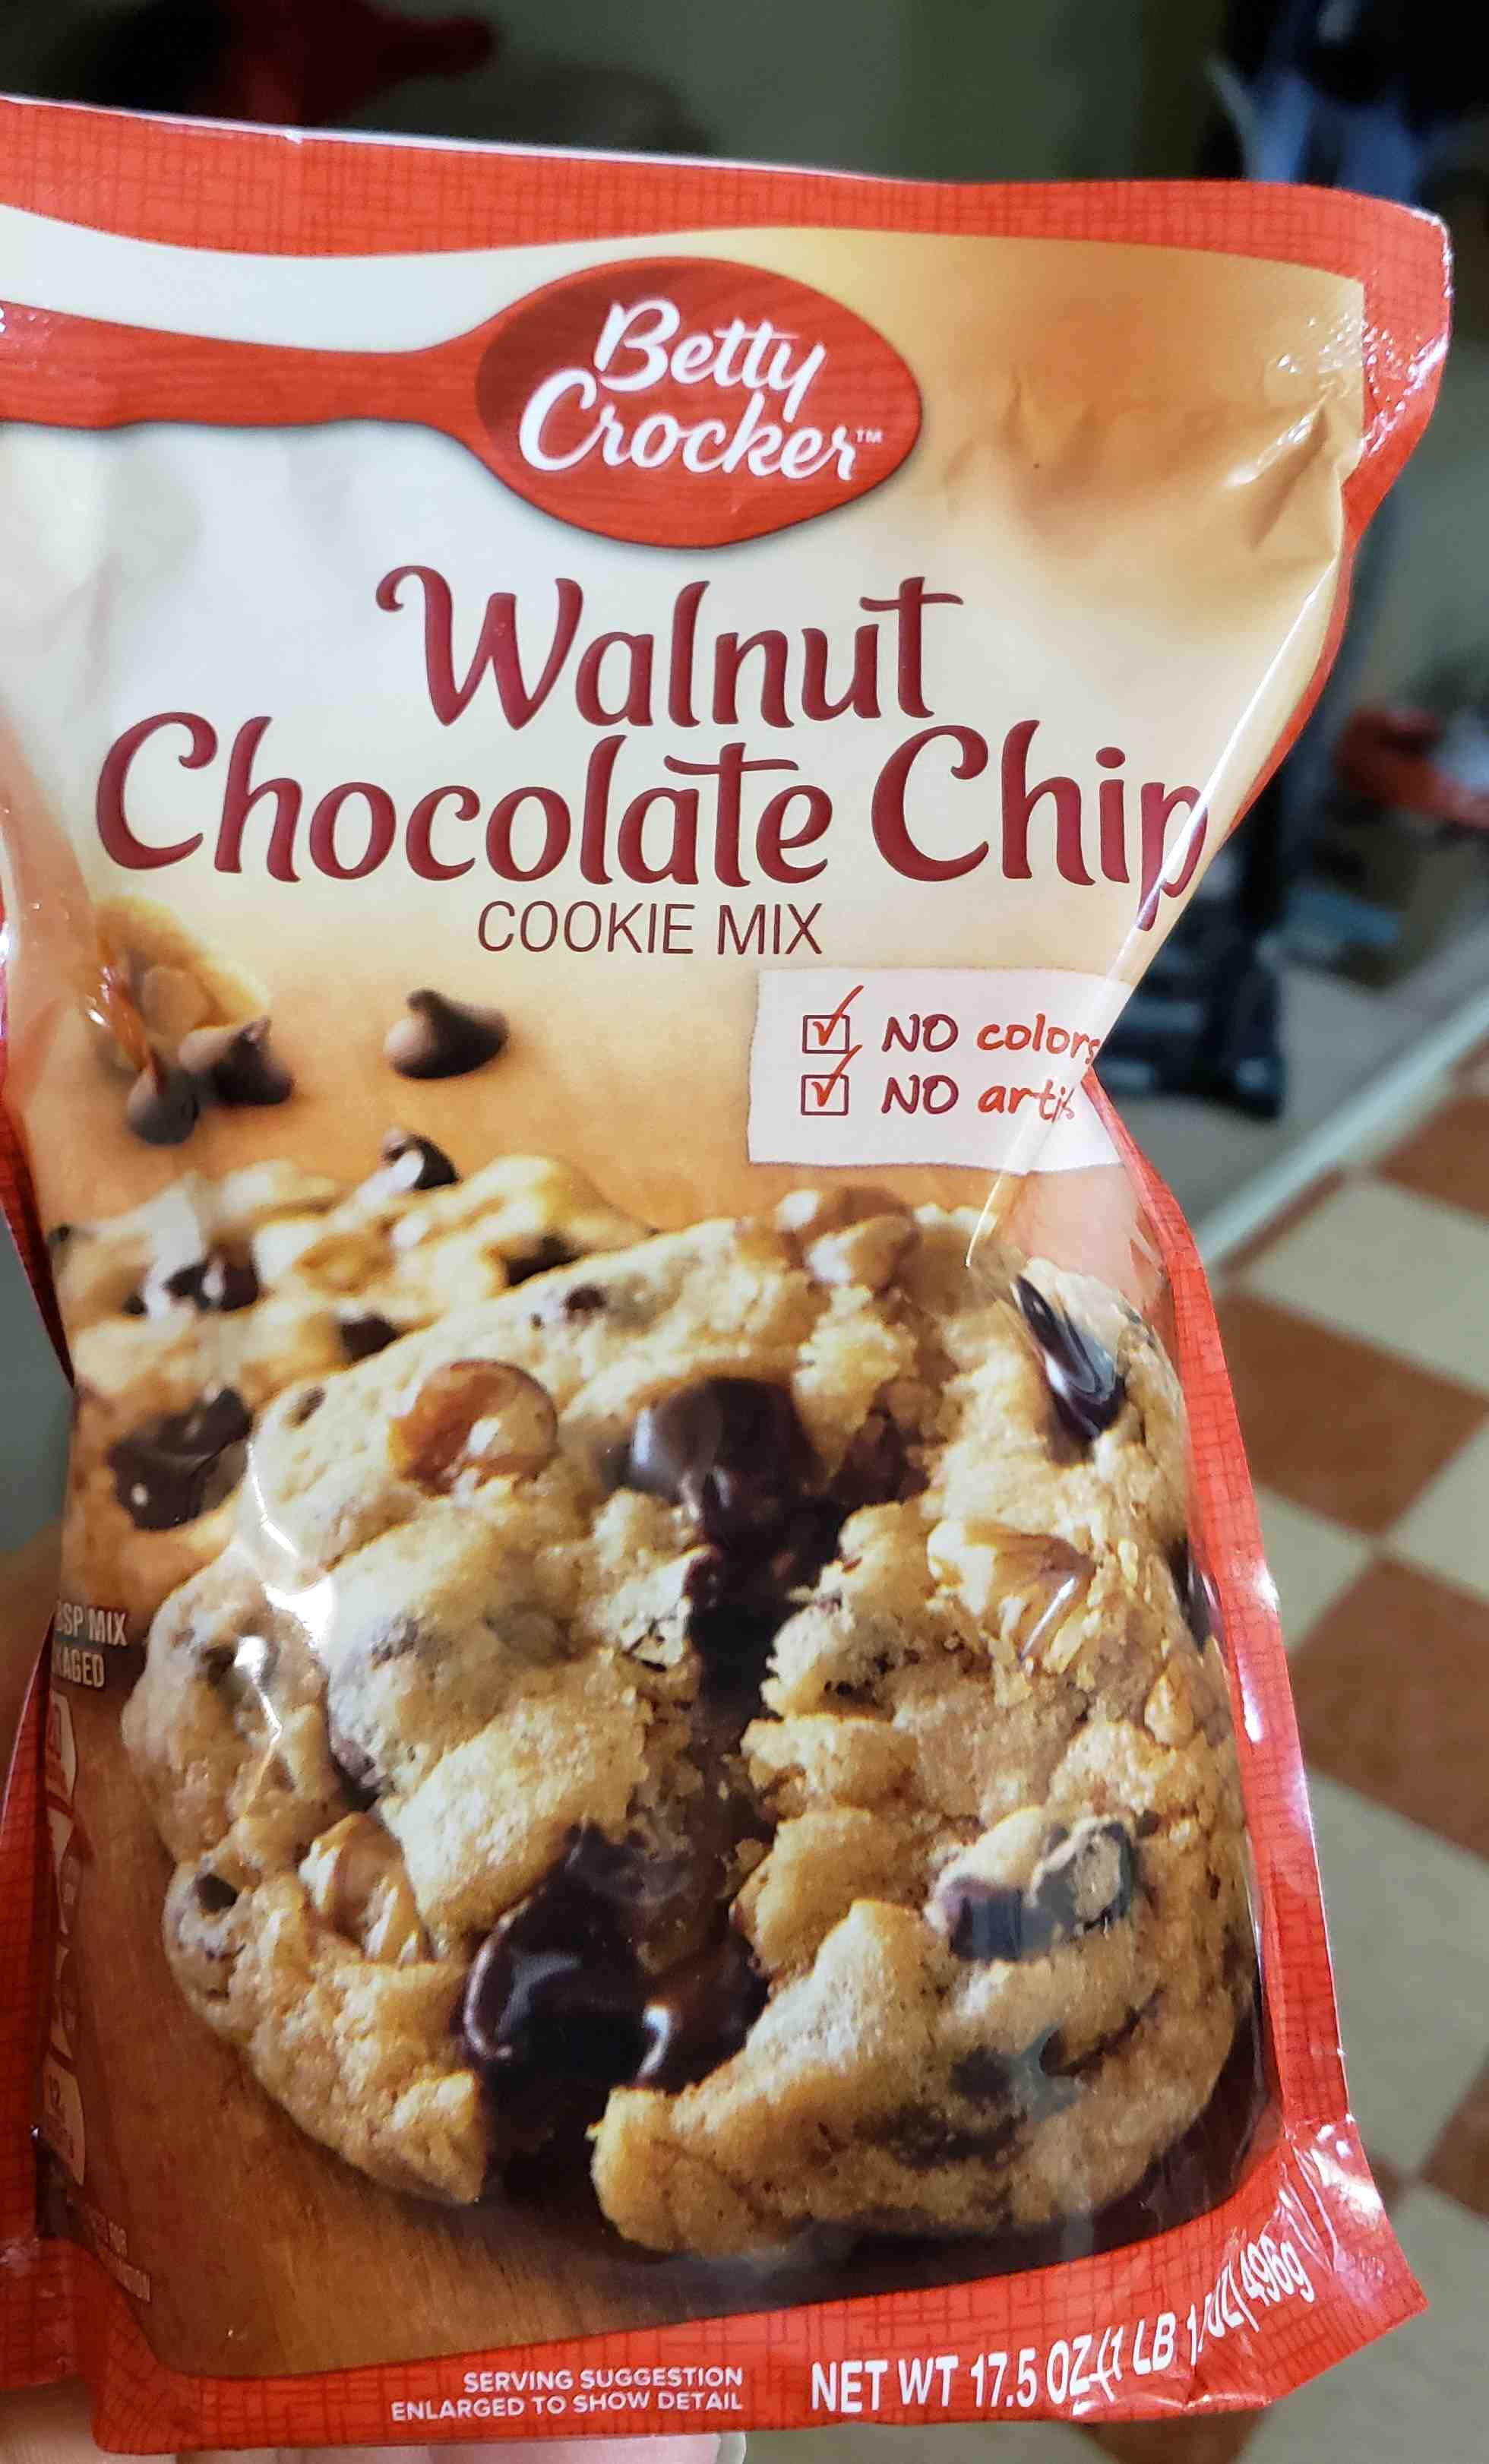 Betty Crocker Walnut Chocolate Chip Cookie Mix - Product - en